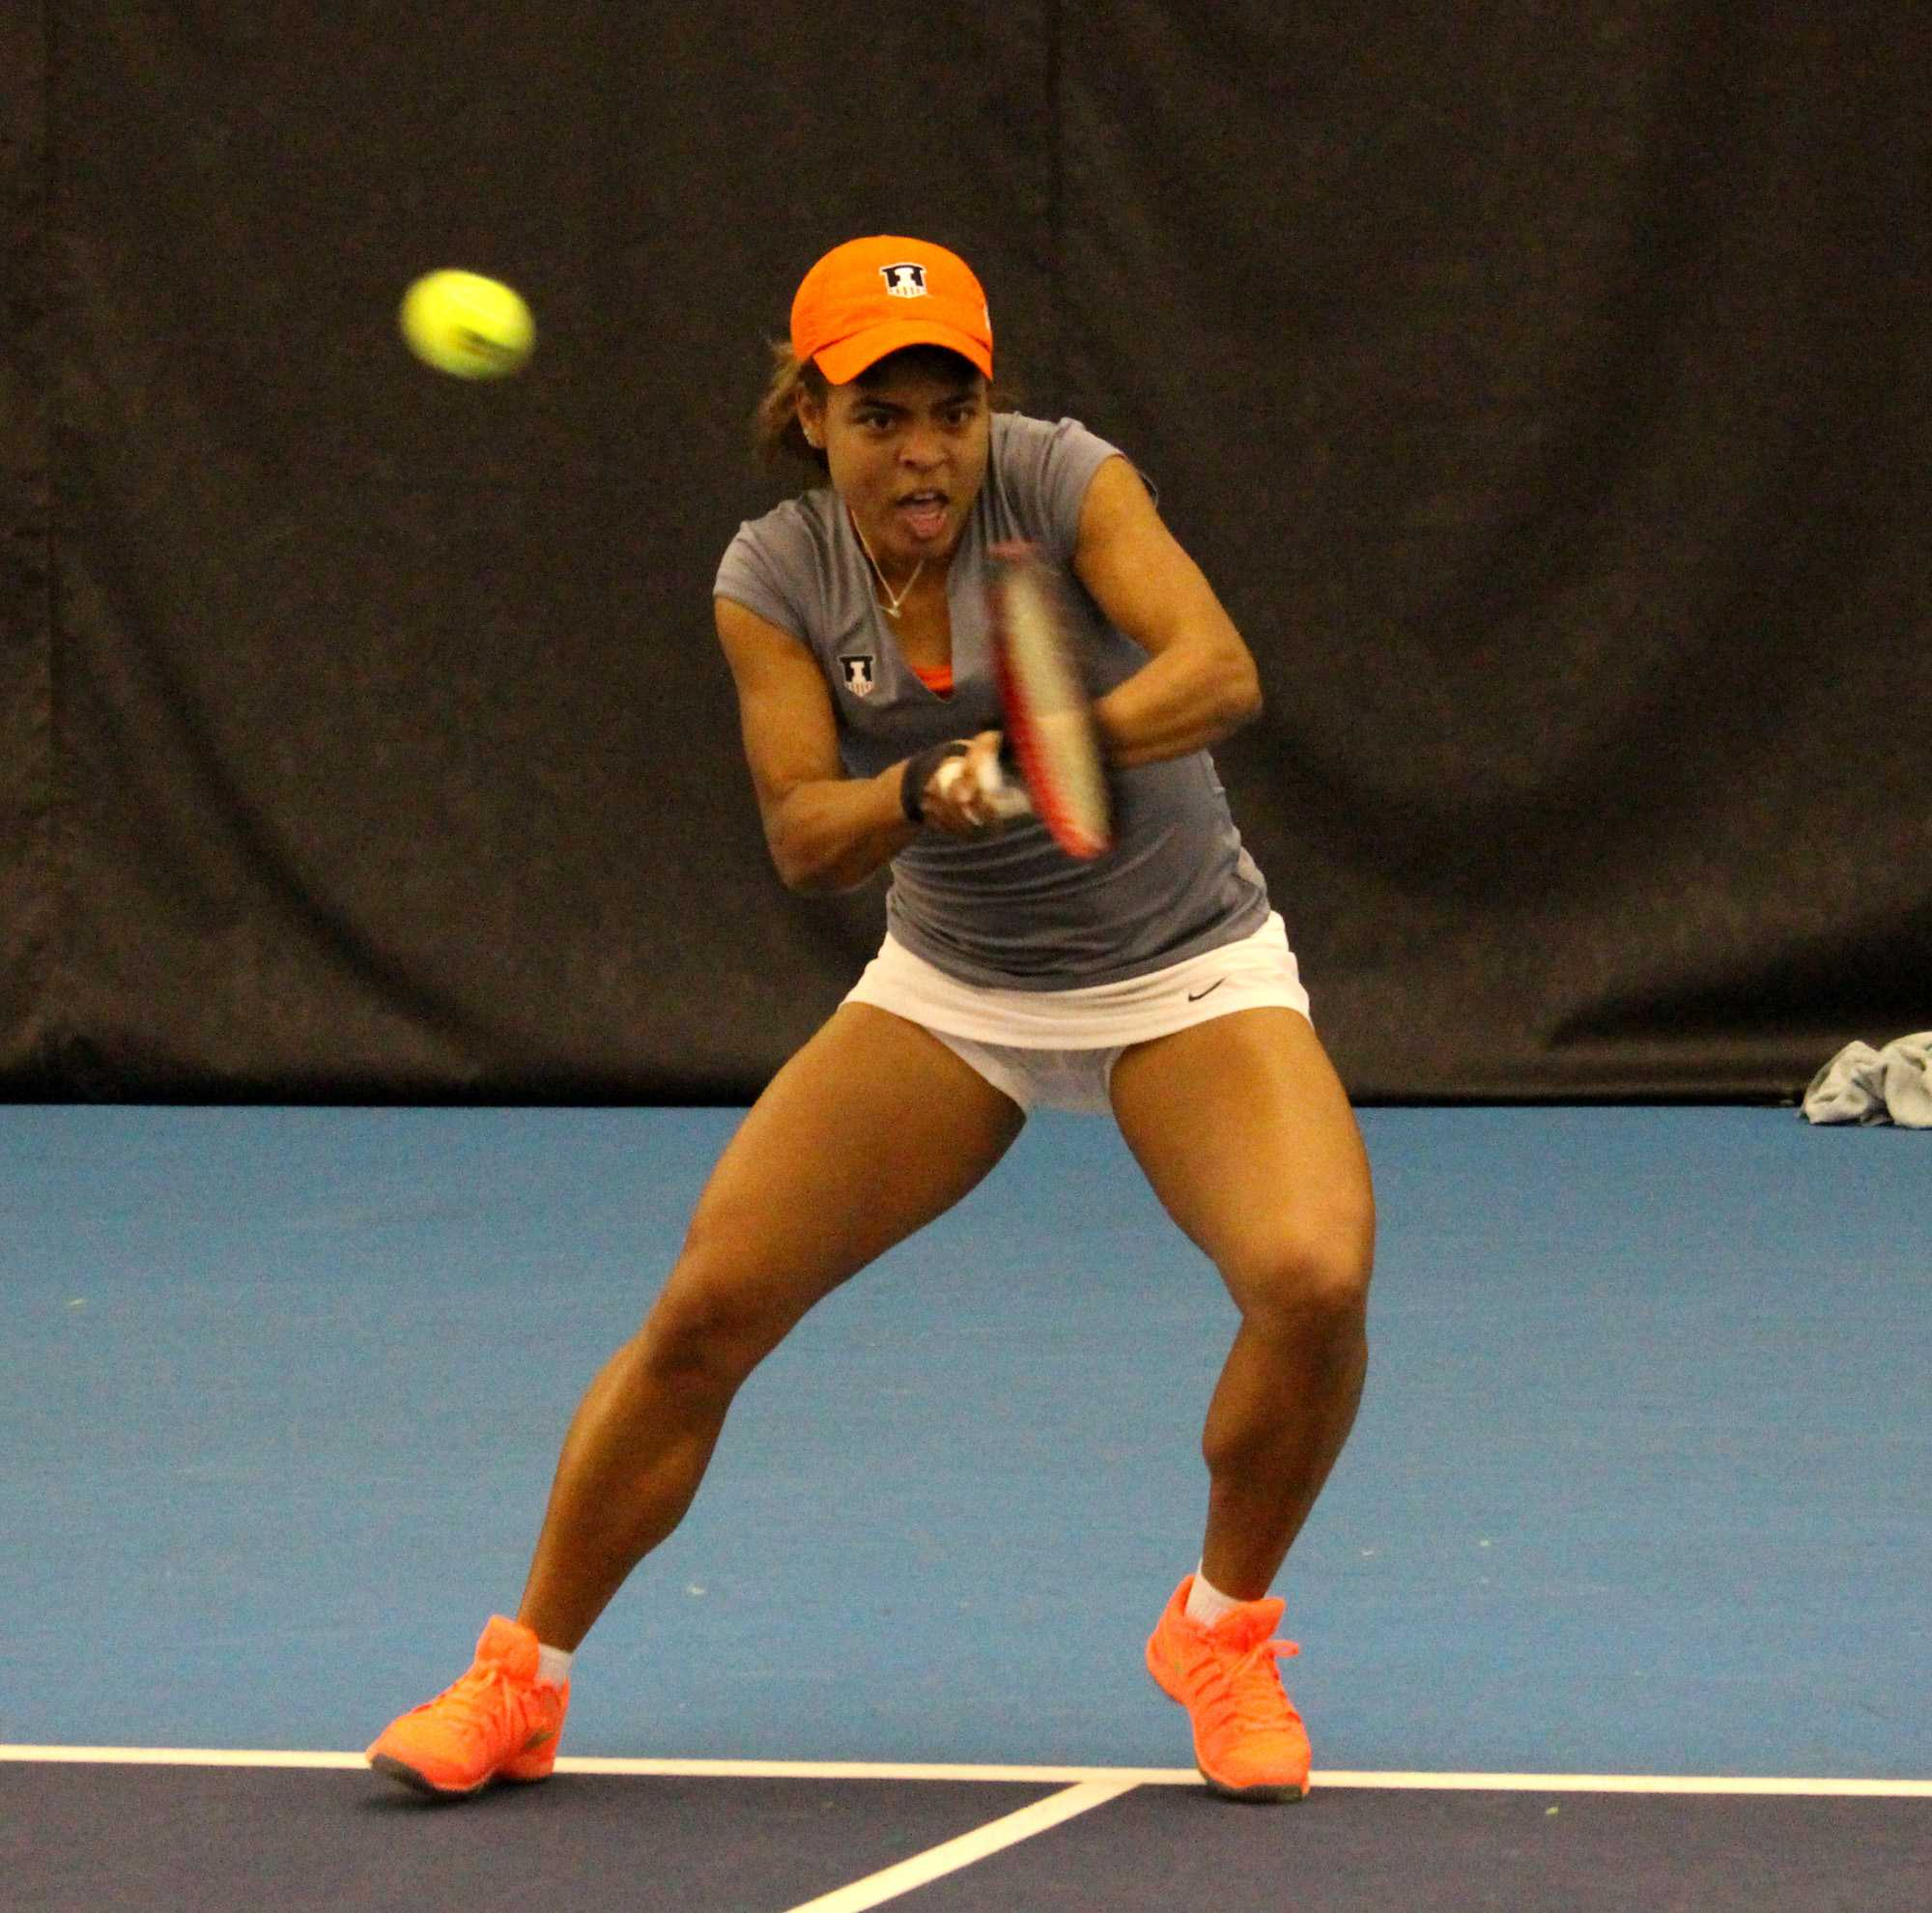 Jerricka Boone getting ready to send the ball back towards Kentucky in the singles matches at the Atkins Tennis Center on February 6, 2016. Kentucky won the match 7-0.